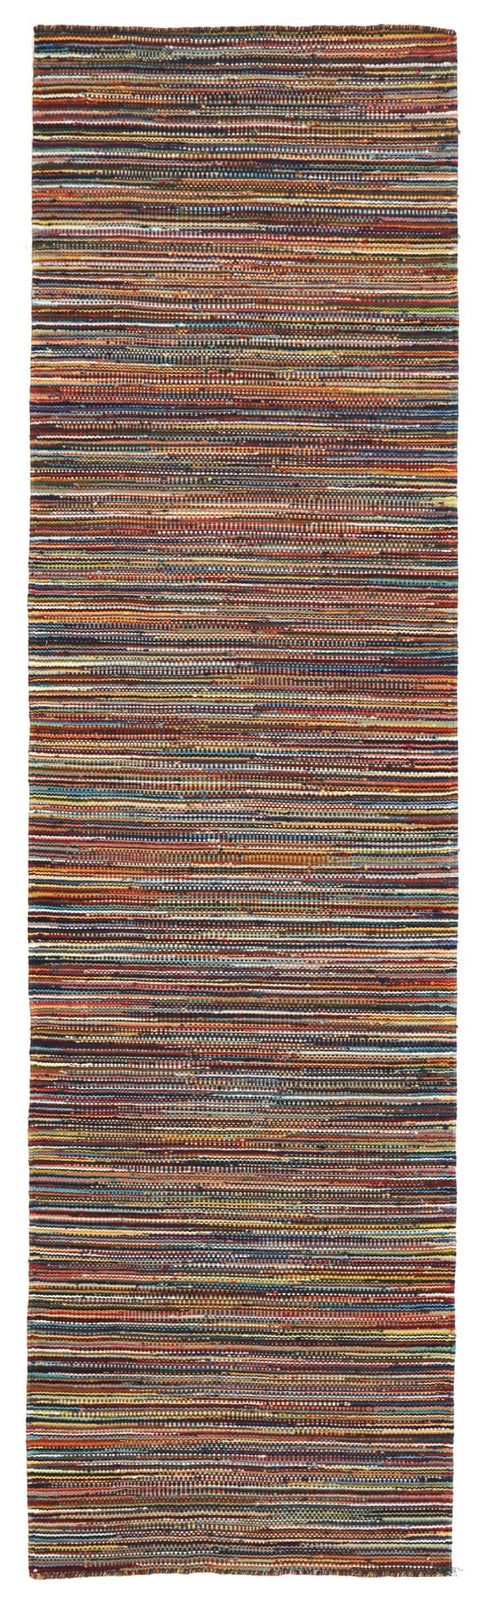 Kathmandu Multi-Colour Striped Wool Kilim Runner Rug